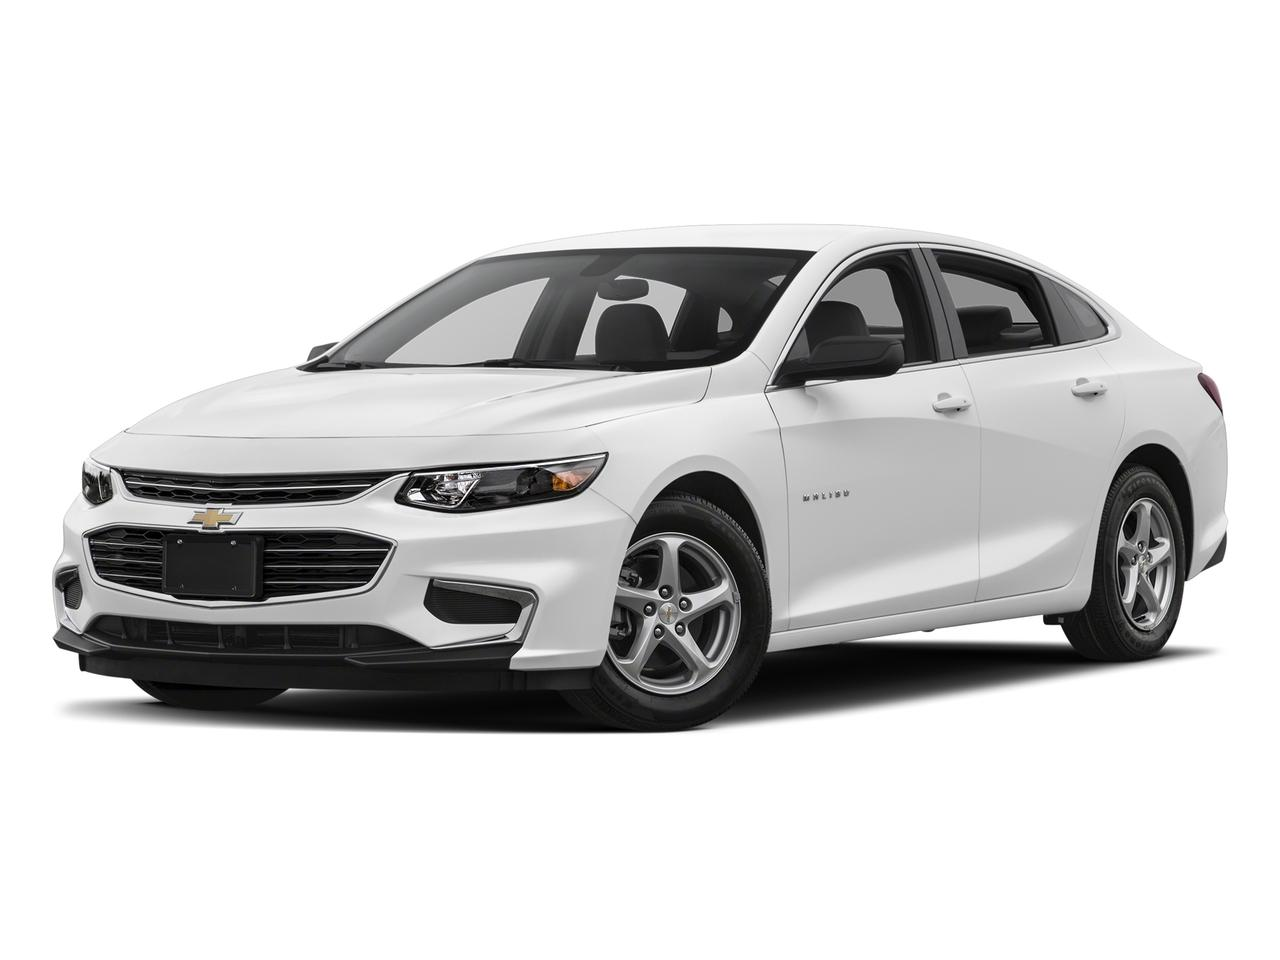 2018 Chevrolet Malibu Vehicle Photo in Peoria, IL 61615